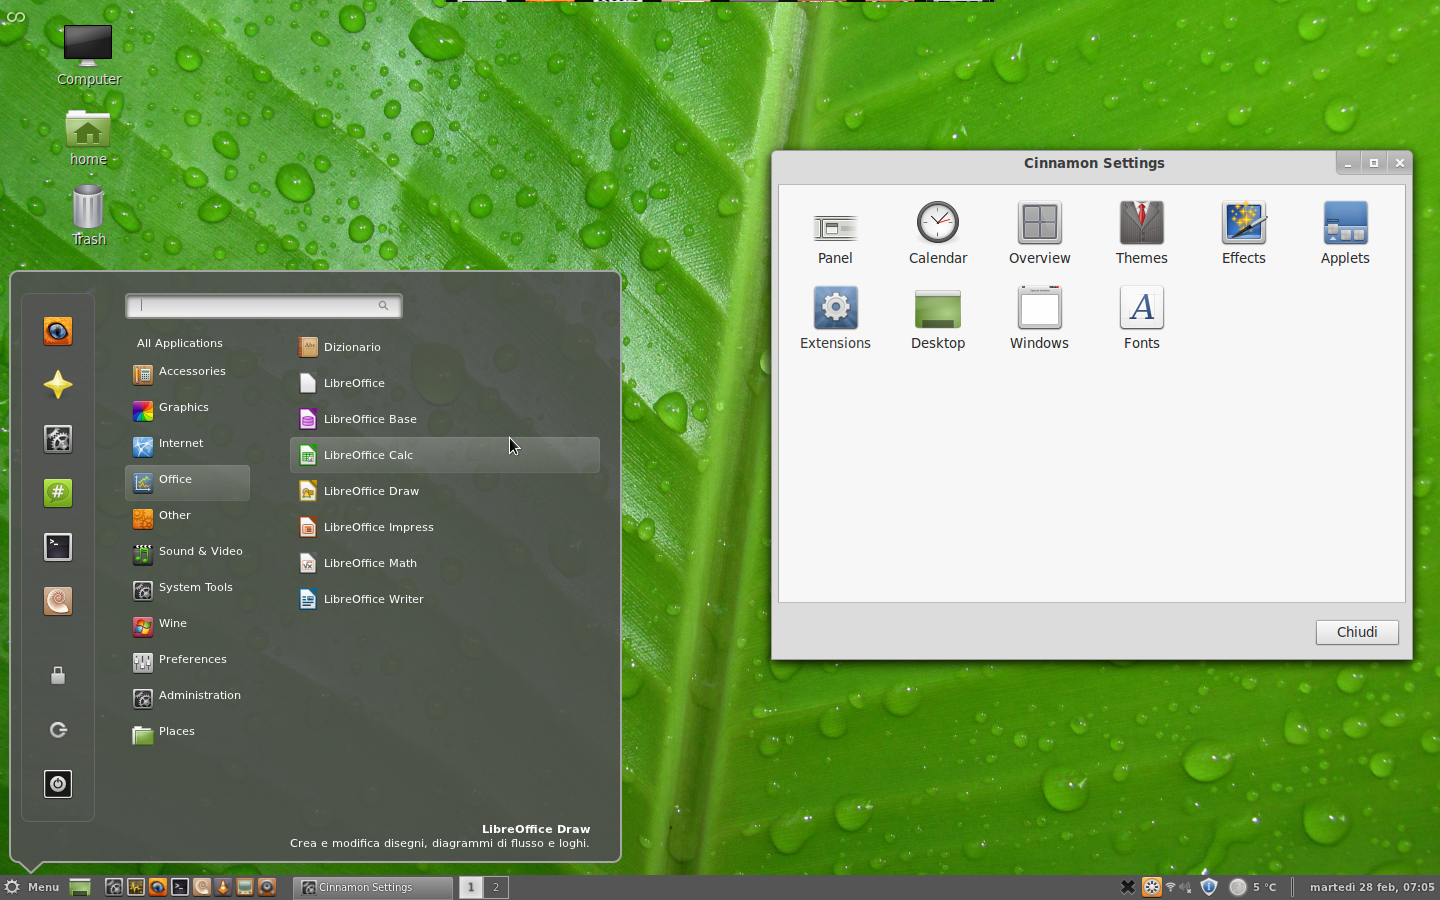 http://upload.wikimedia.org/wikipedia/commons/0/07/Linux_Mint_12_with_Cinnamon.png